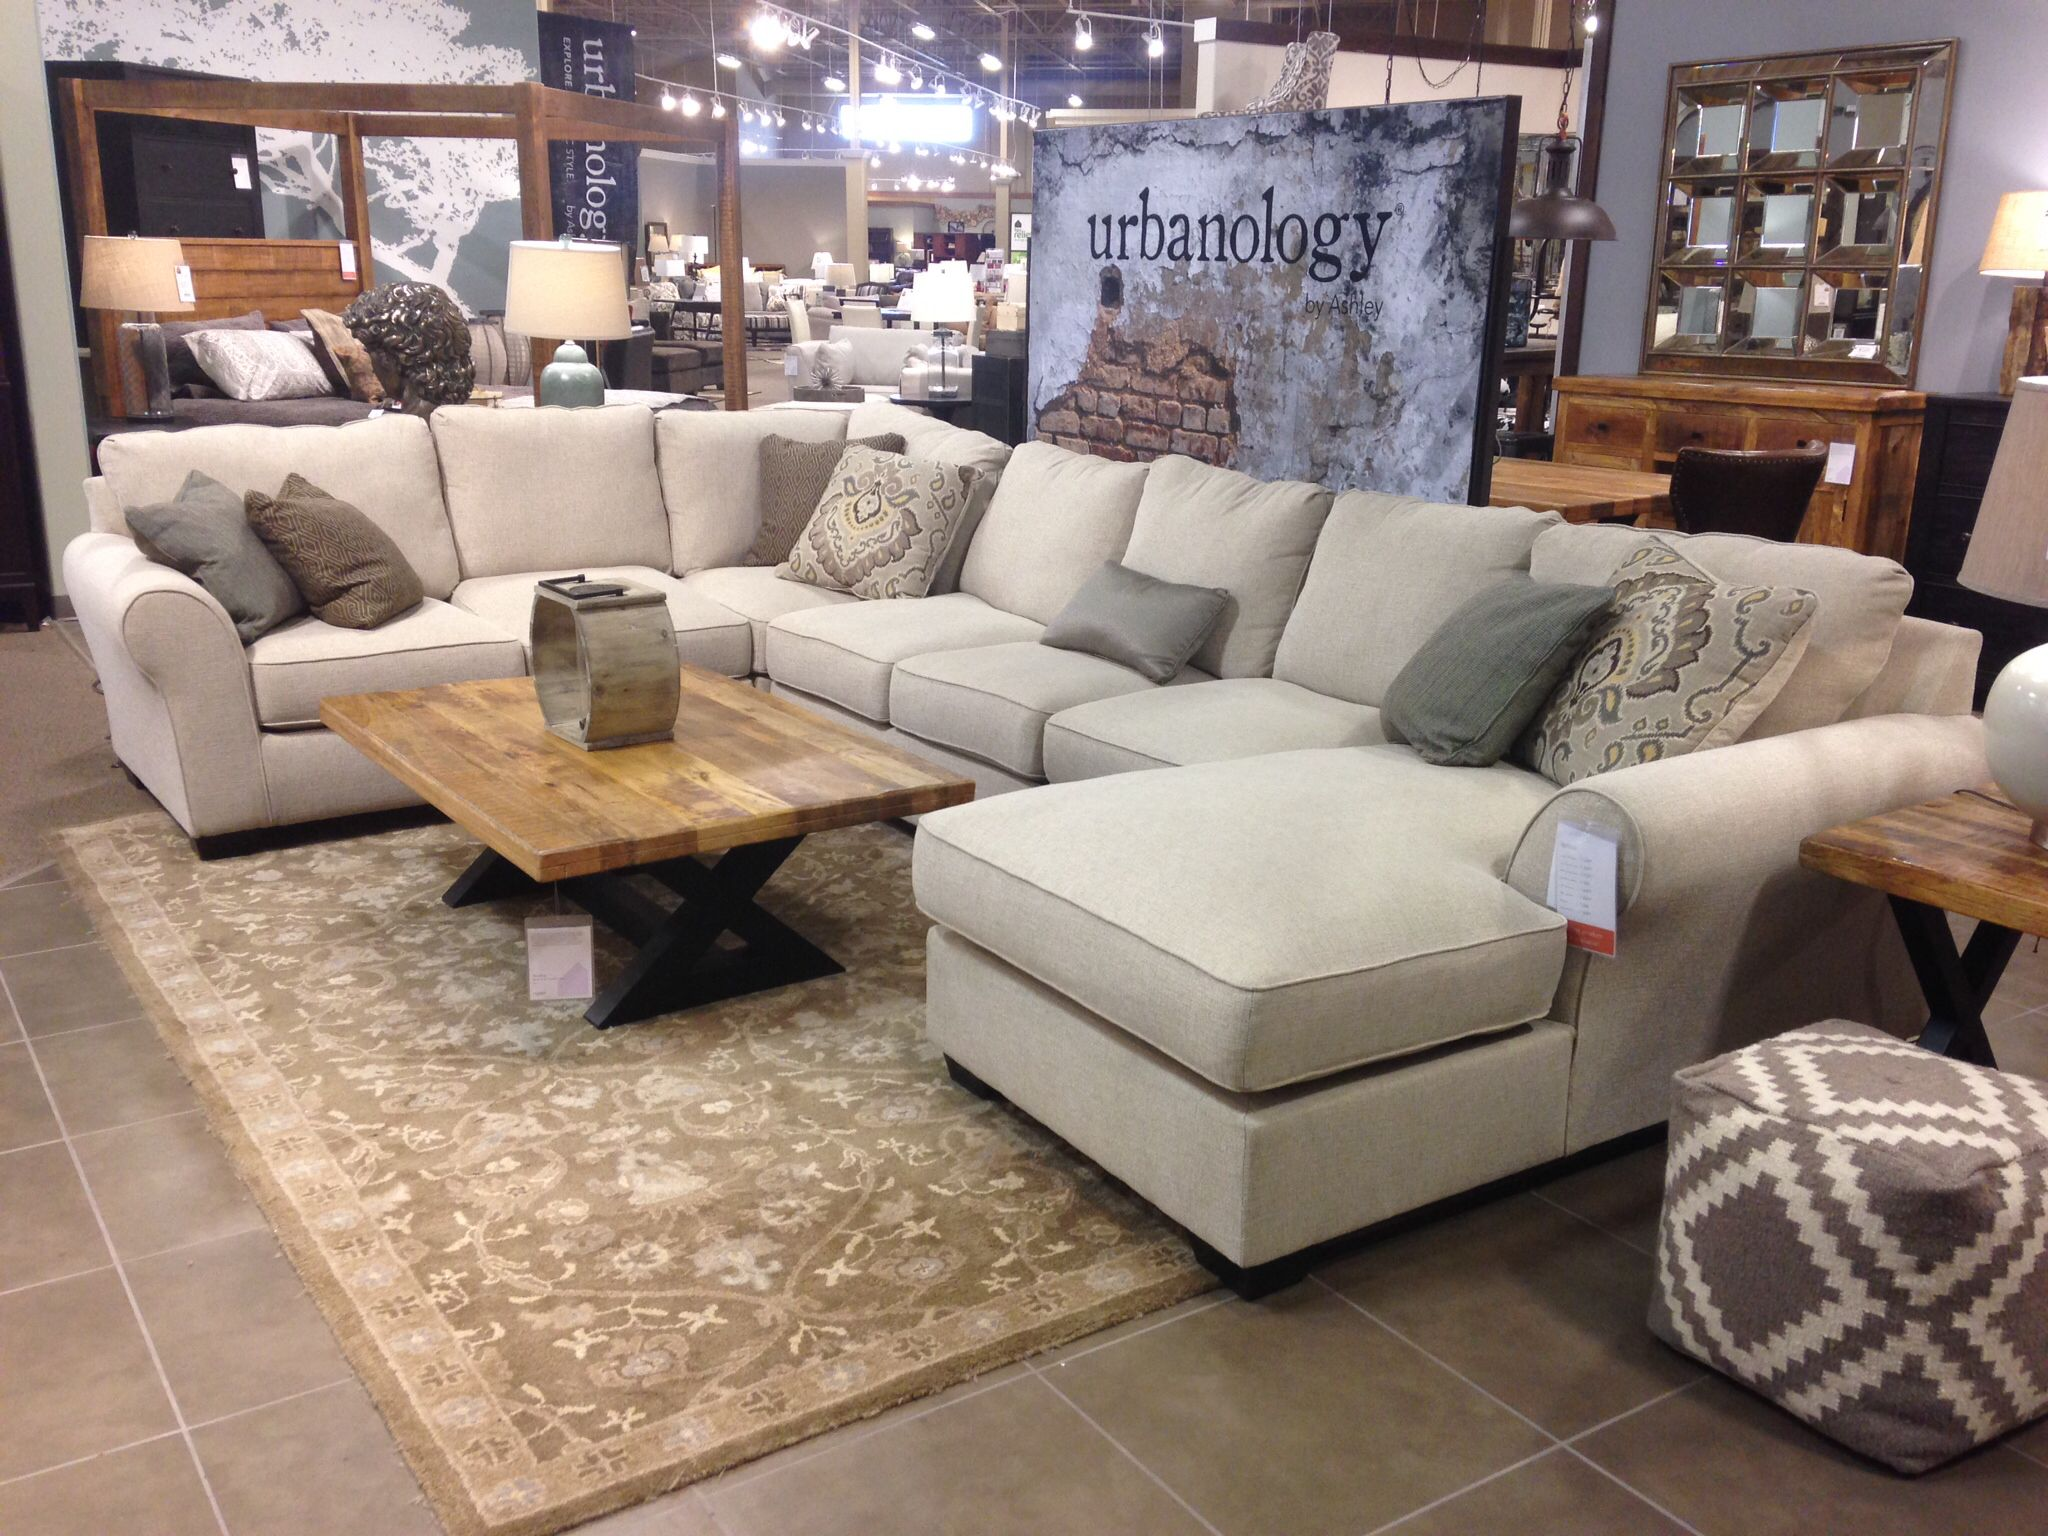 Ashley Furniture Urbanology Modern Rustic